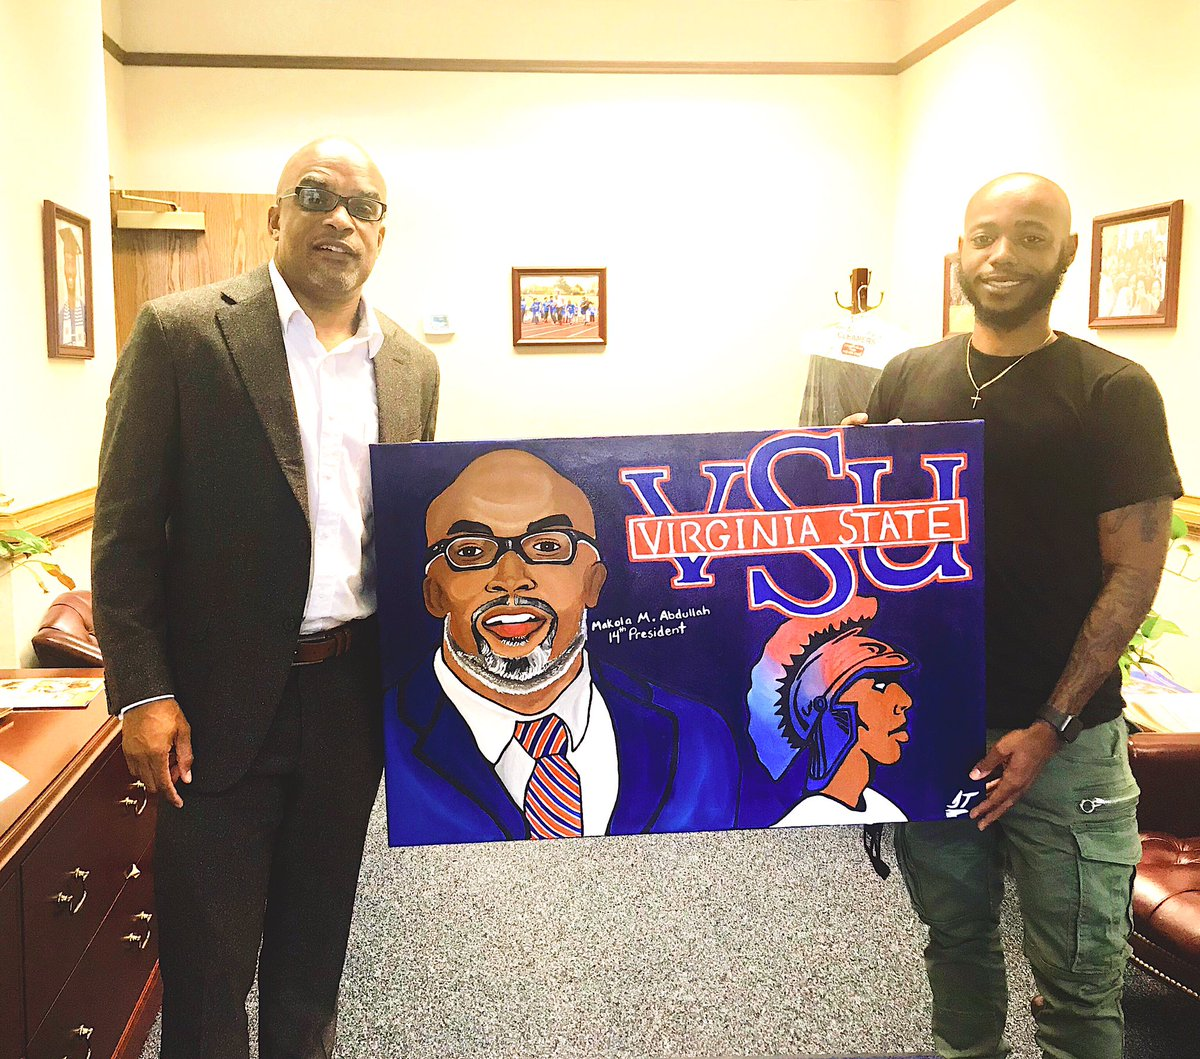 Made it to my alma mater Virginia State University this morning and got a chance to converse with the man himself @makolaabdullah. It was an honor to do this for you and hand deliver it to you myself. I love my HBCU  #vsu #hailstate<br>http://pic.twitter.com/h88iVTU4dw